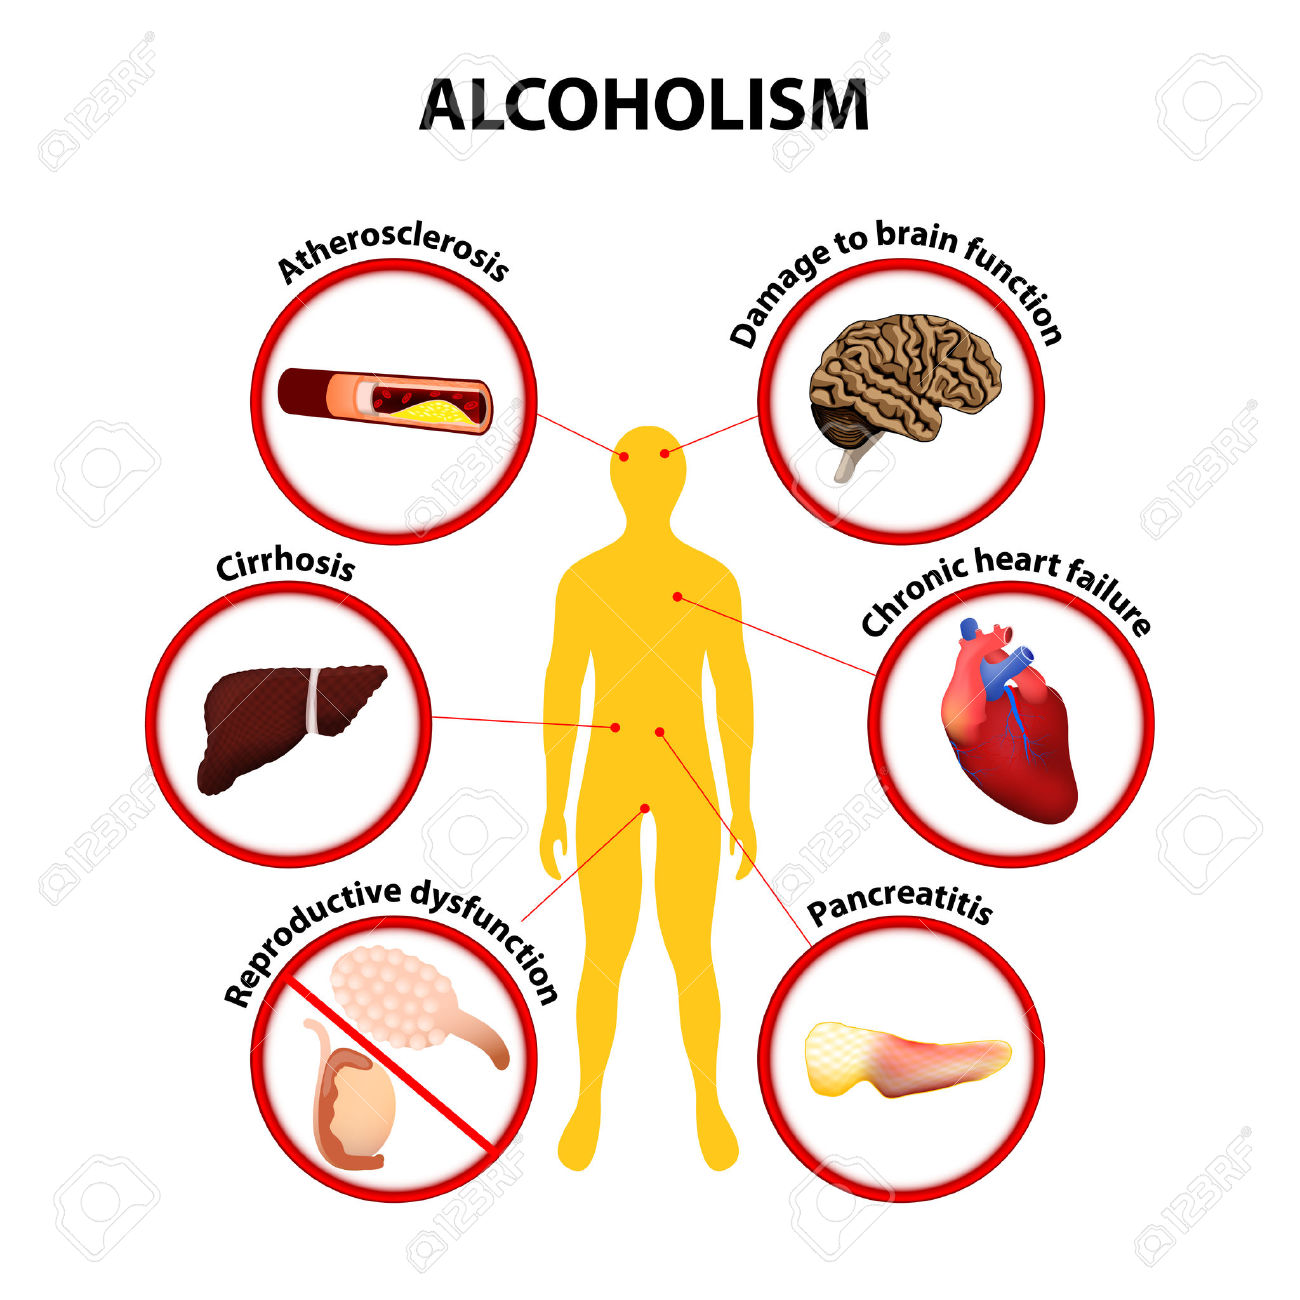 Alcohol Health Problems And Symptoms Of Use